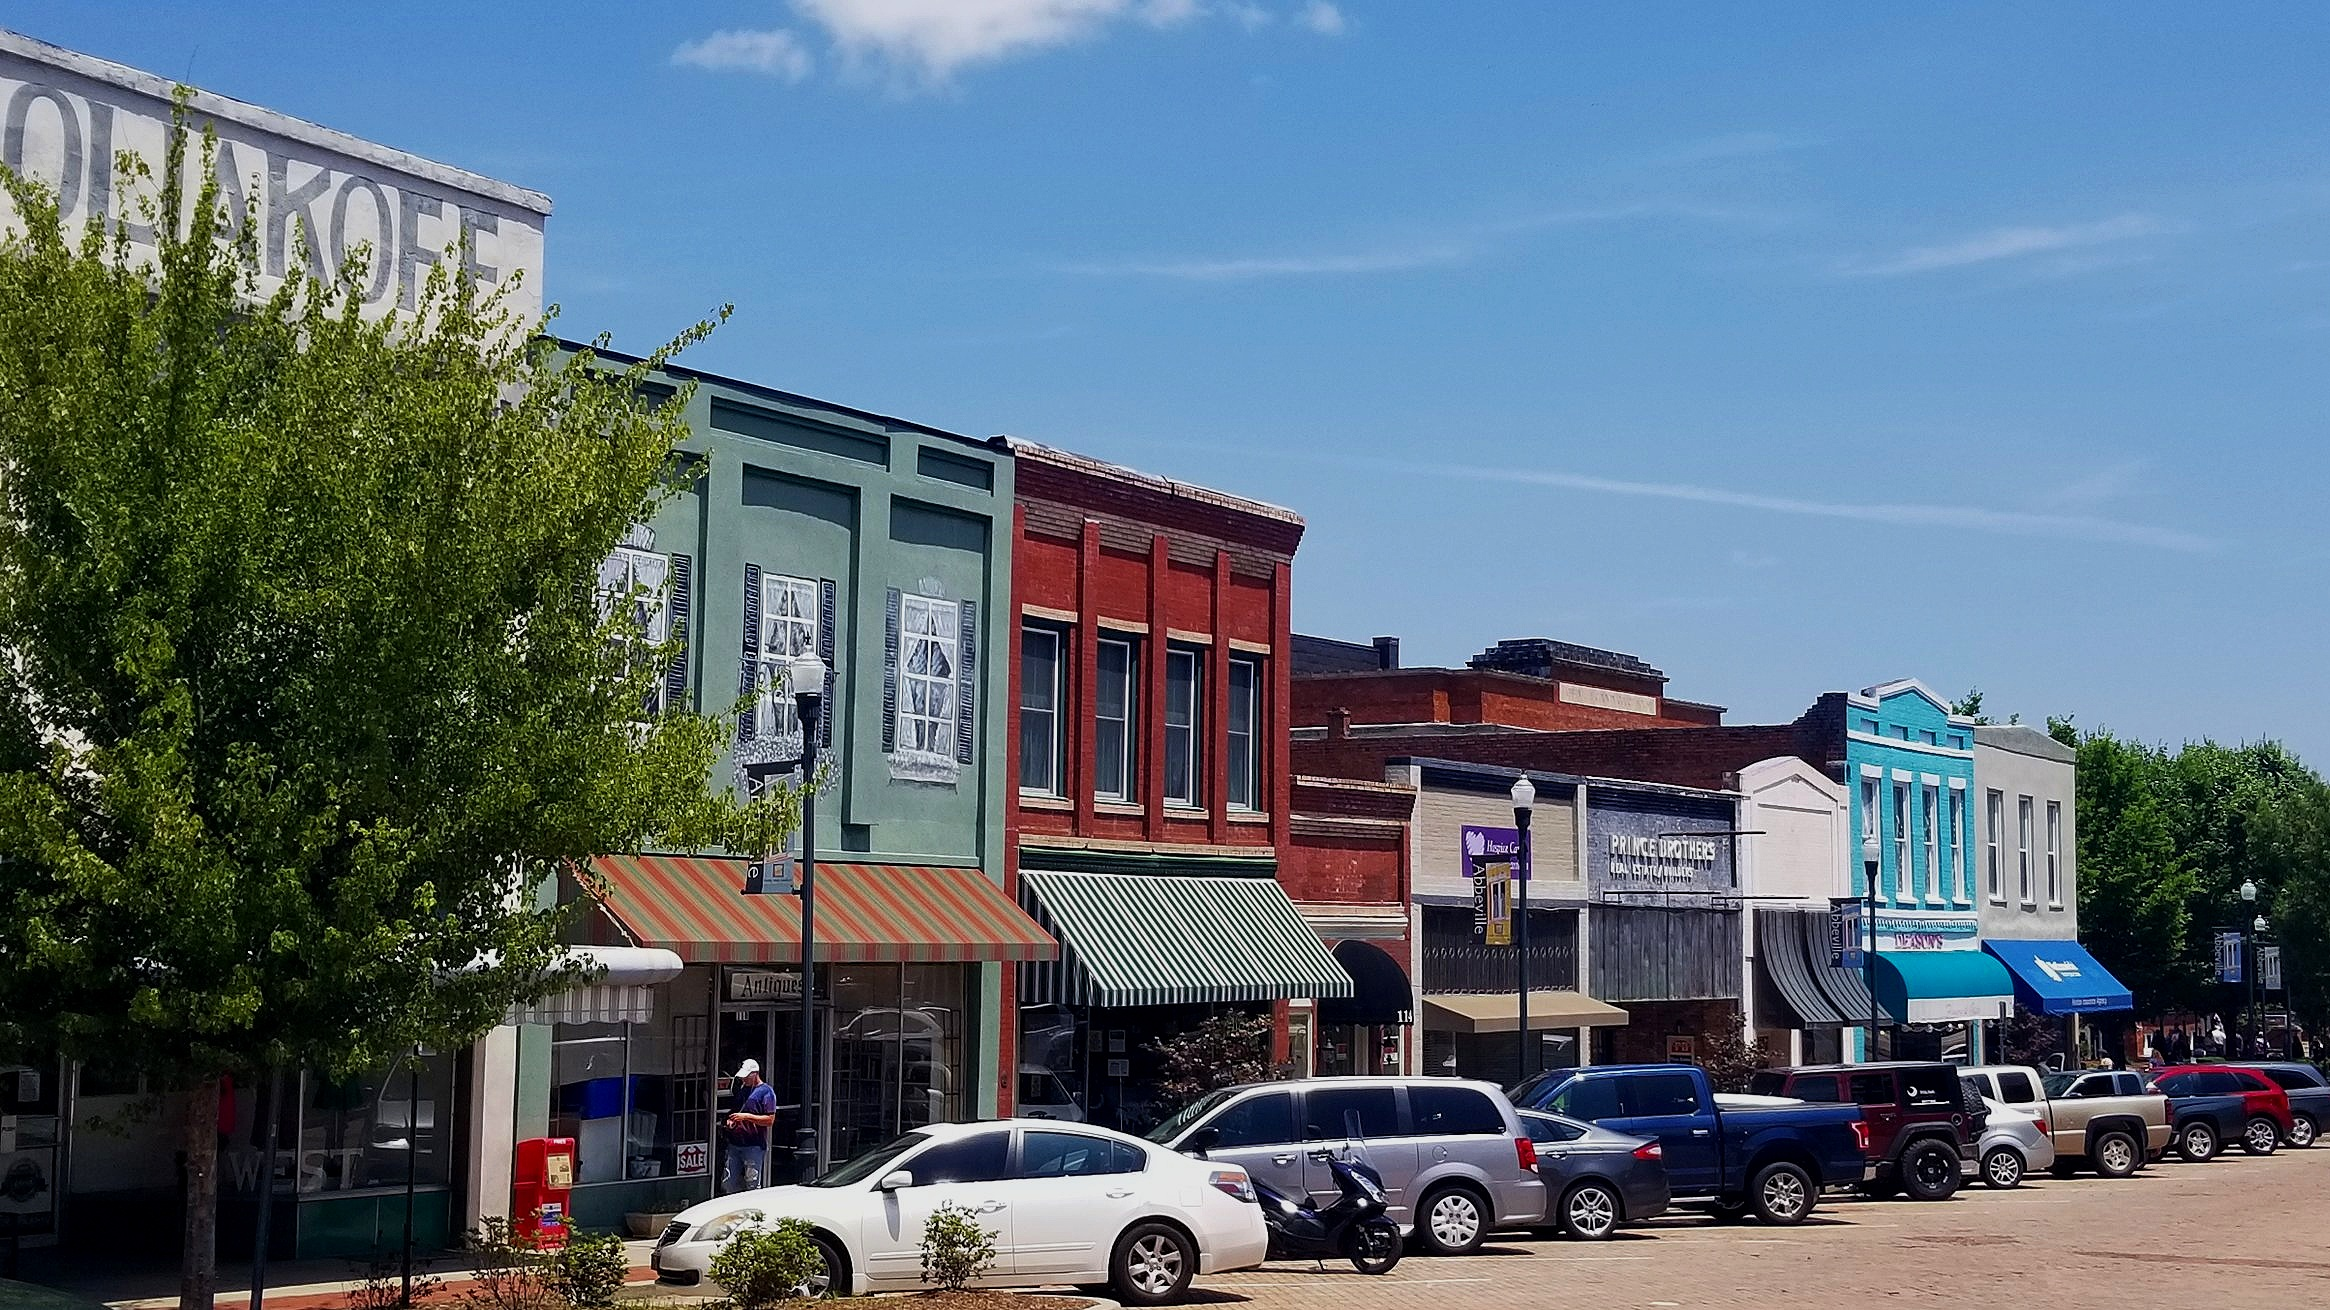 """While Charleston has it's """"Rainbow Row"""", Abbeville definitely has its share of colorful buildings around its town square."""